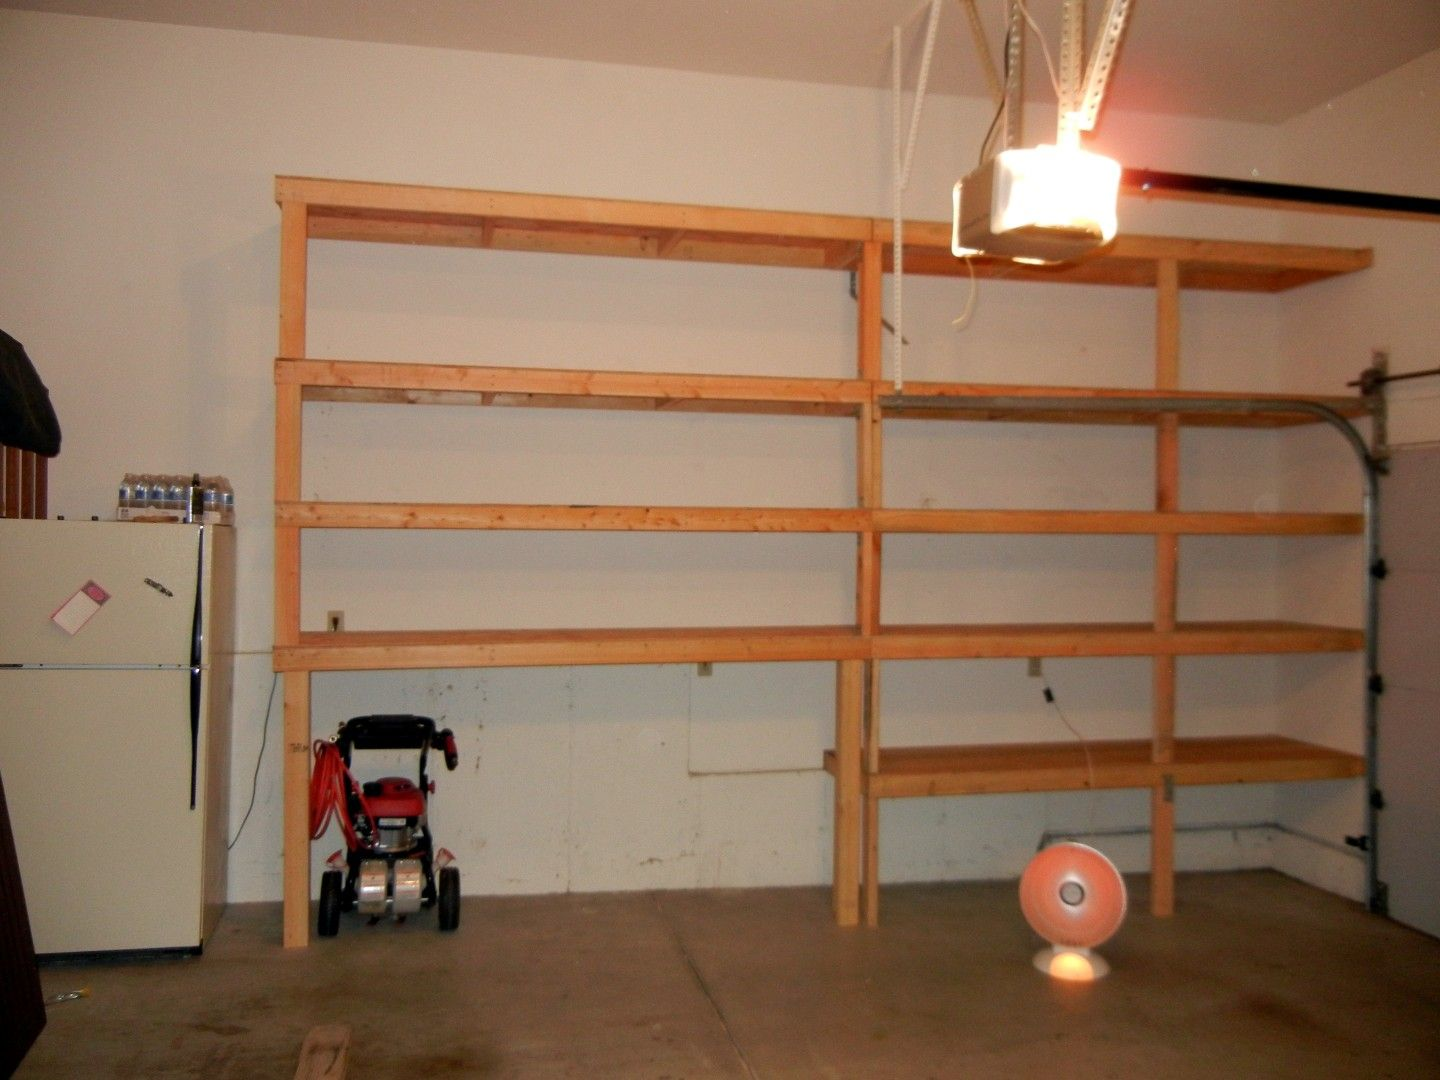 Garage Shelves organization diysisters.com | DIY Sisters Projects ...